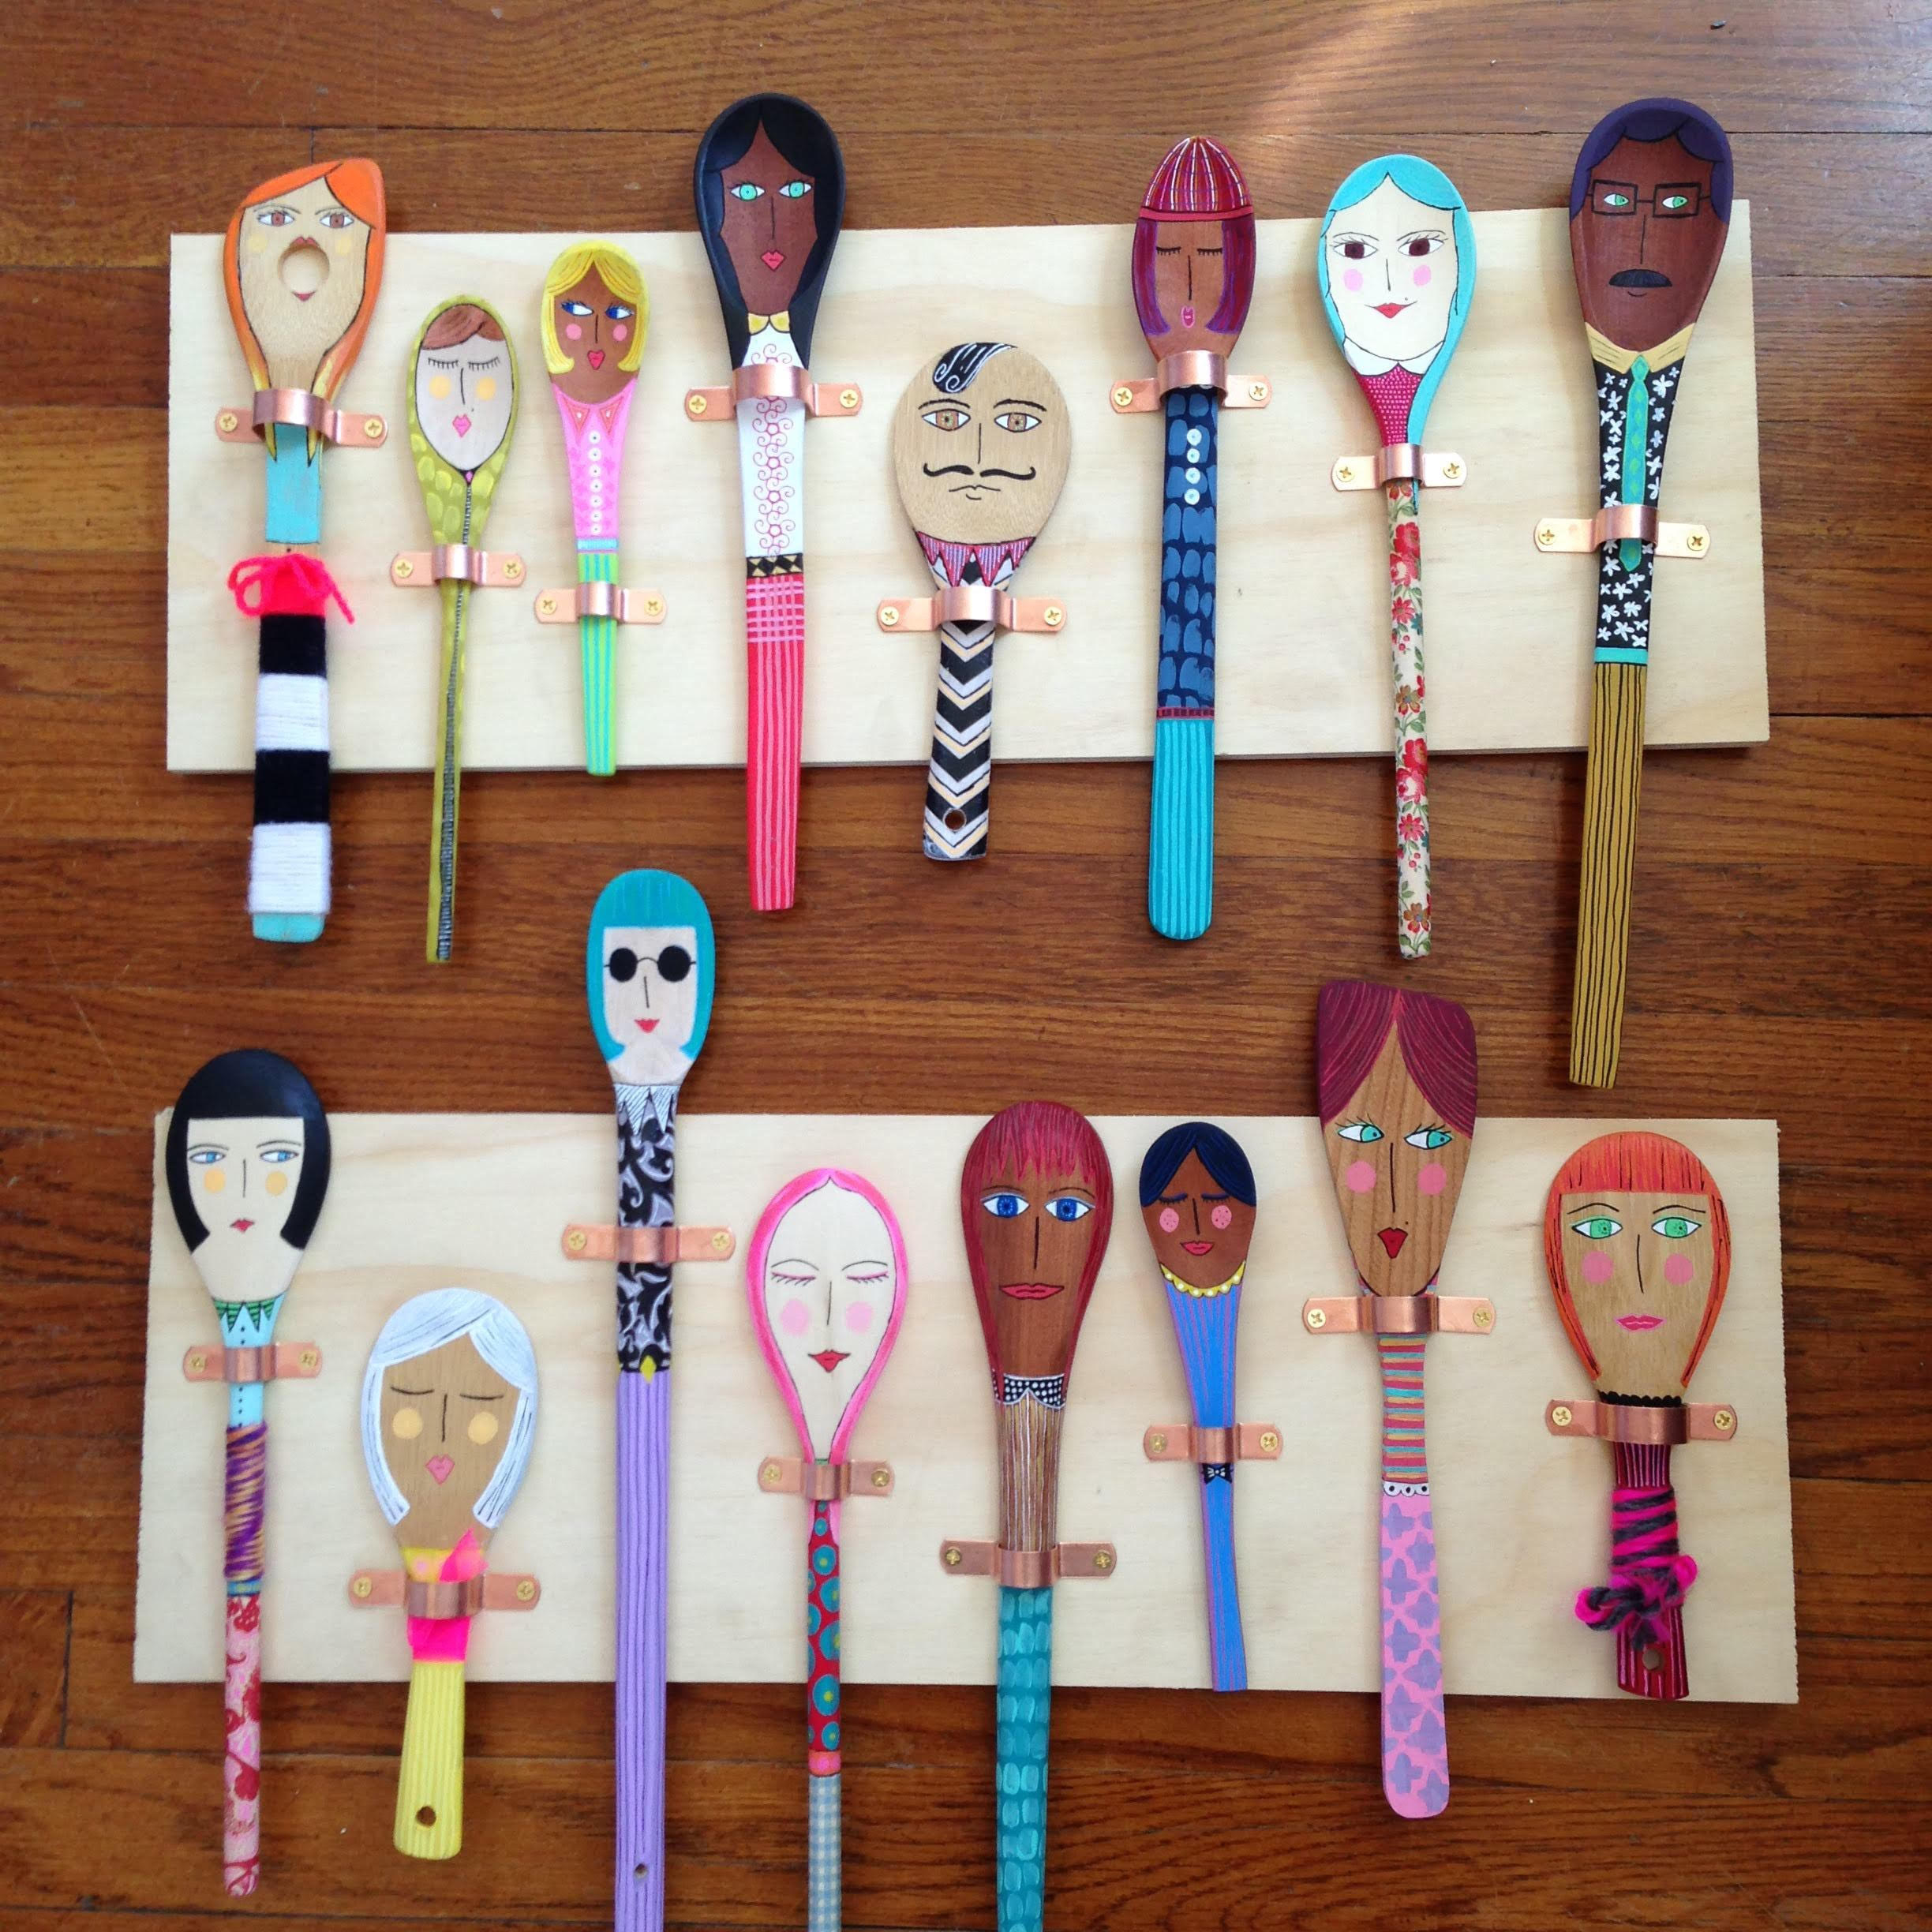 Art Spoons: Kitchen Craft for the Family